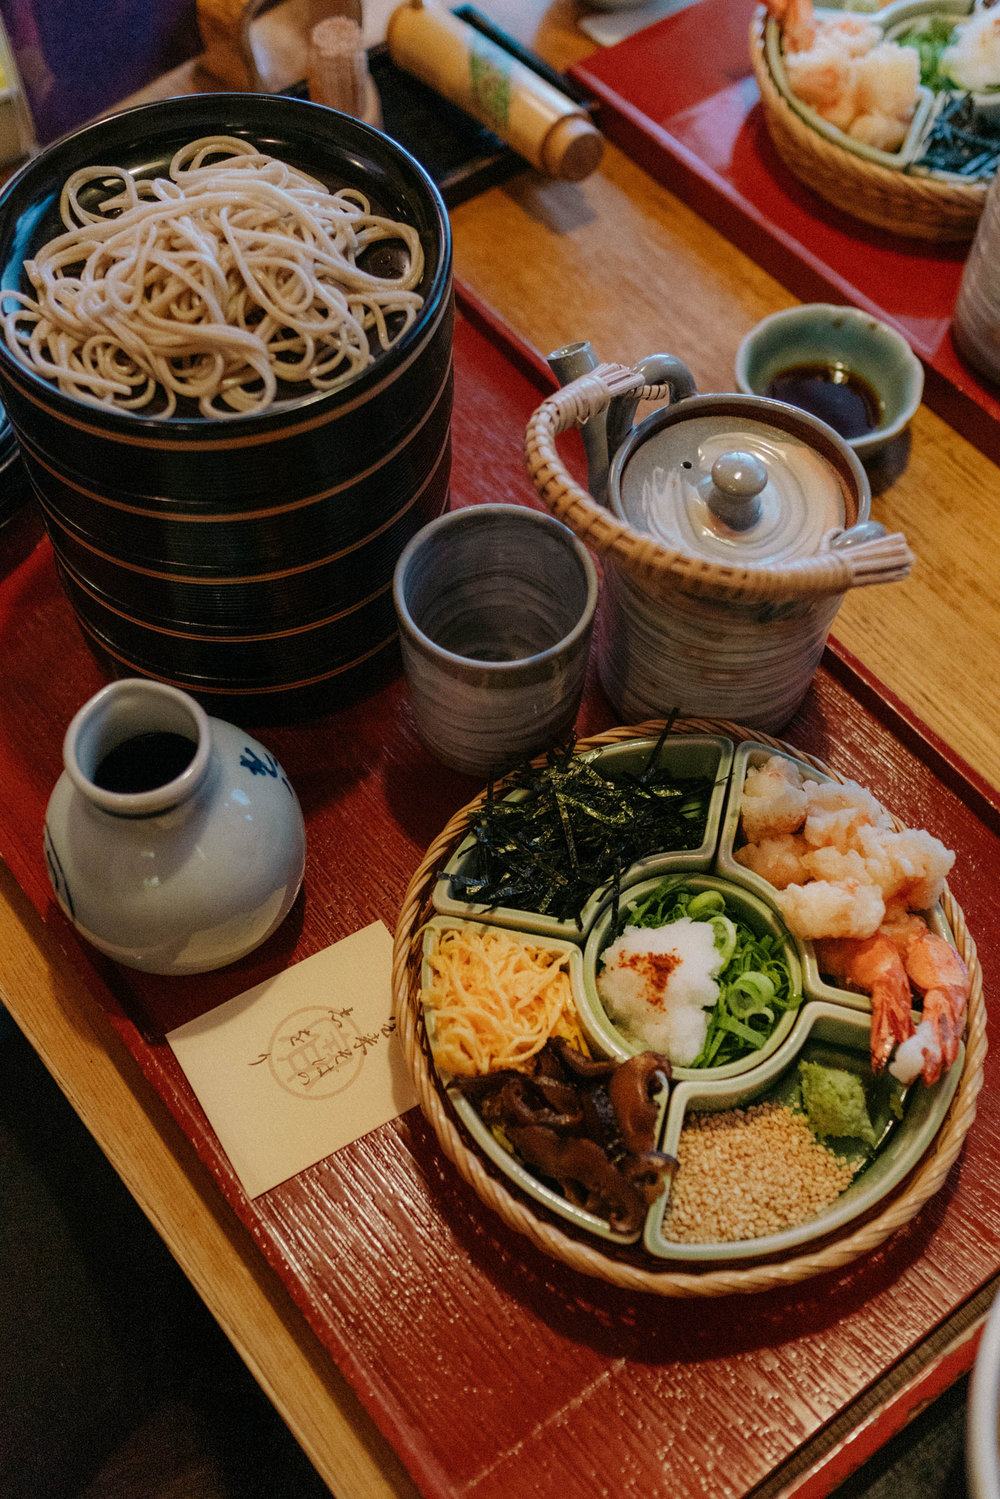 Cold Hourai soba that comes with 8 toppings of shiitake mushrooms, shredded omelet, shrimp tempura, nori, wasabi, grated daikon, sesame seeds, and green Japanese leeks